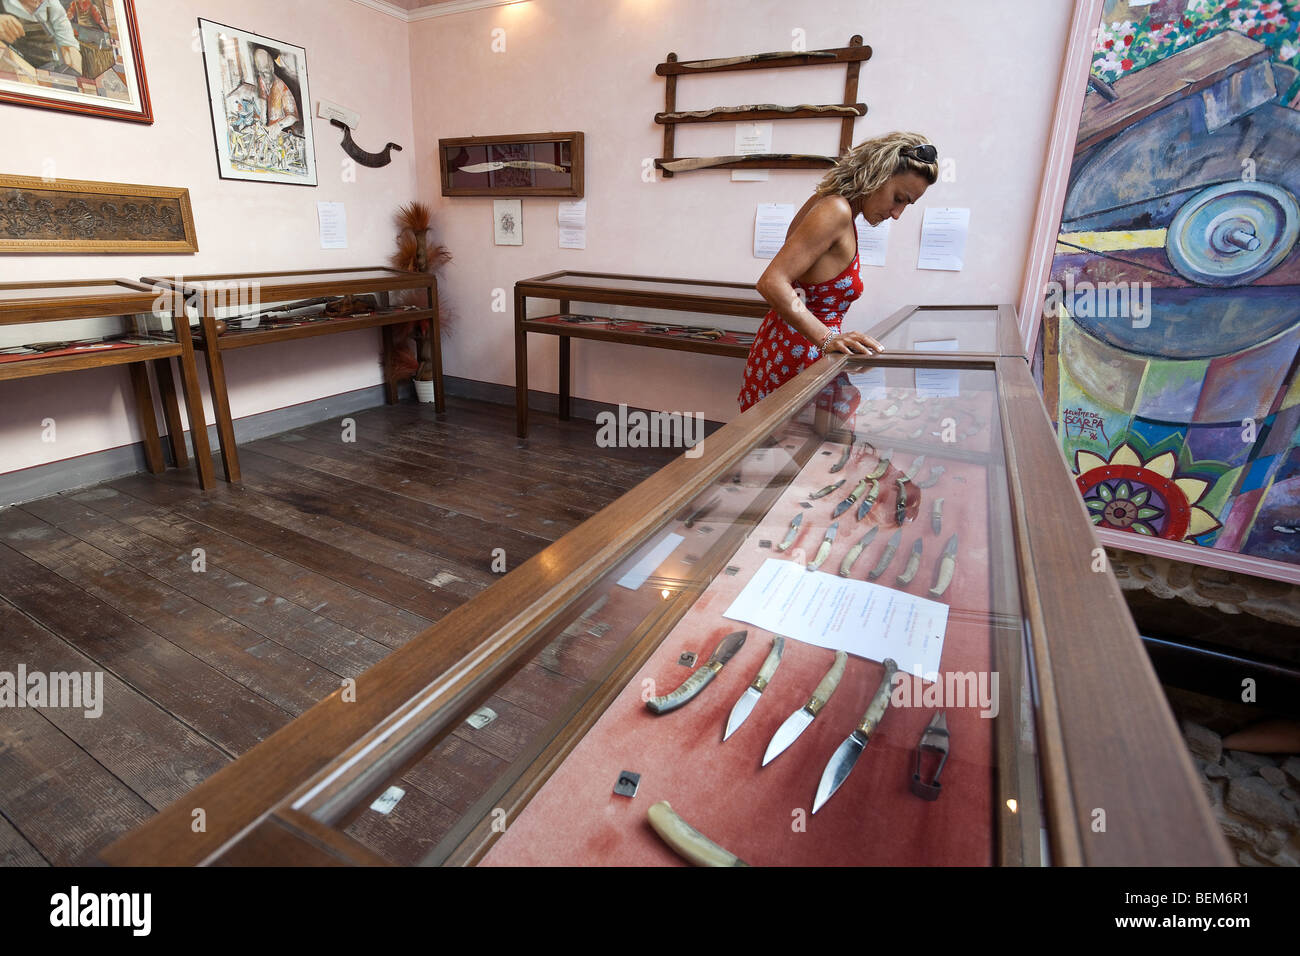 Woman in the knife's museum in Sardinia, Arbus - Stock Image